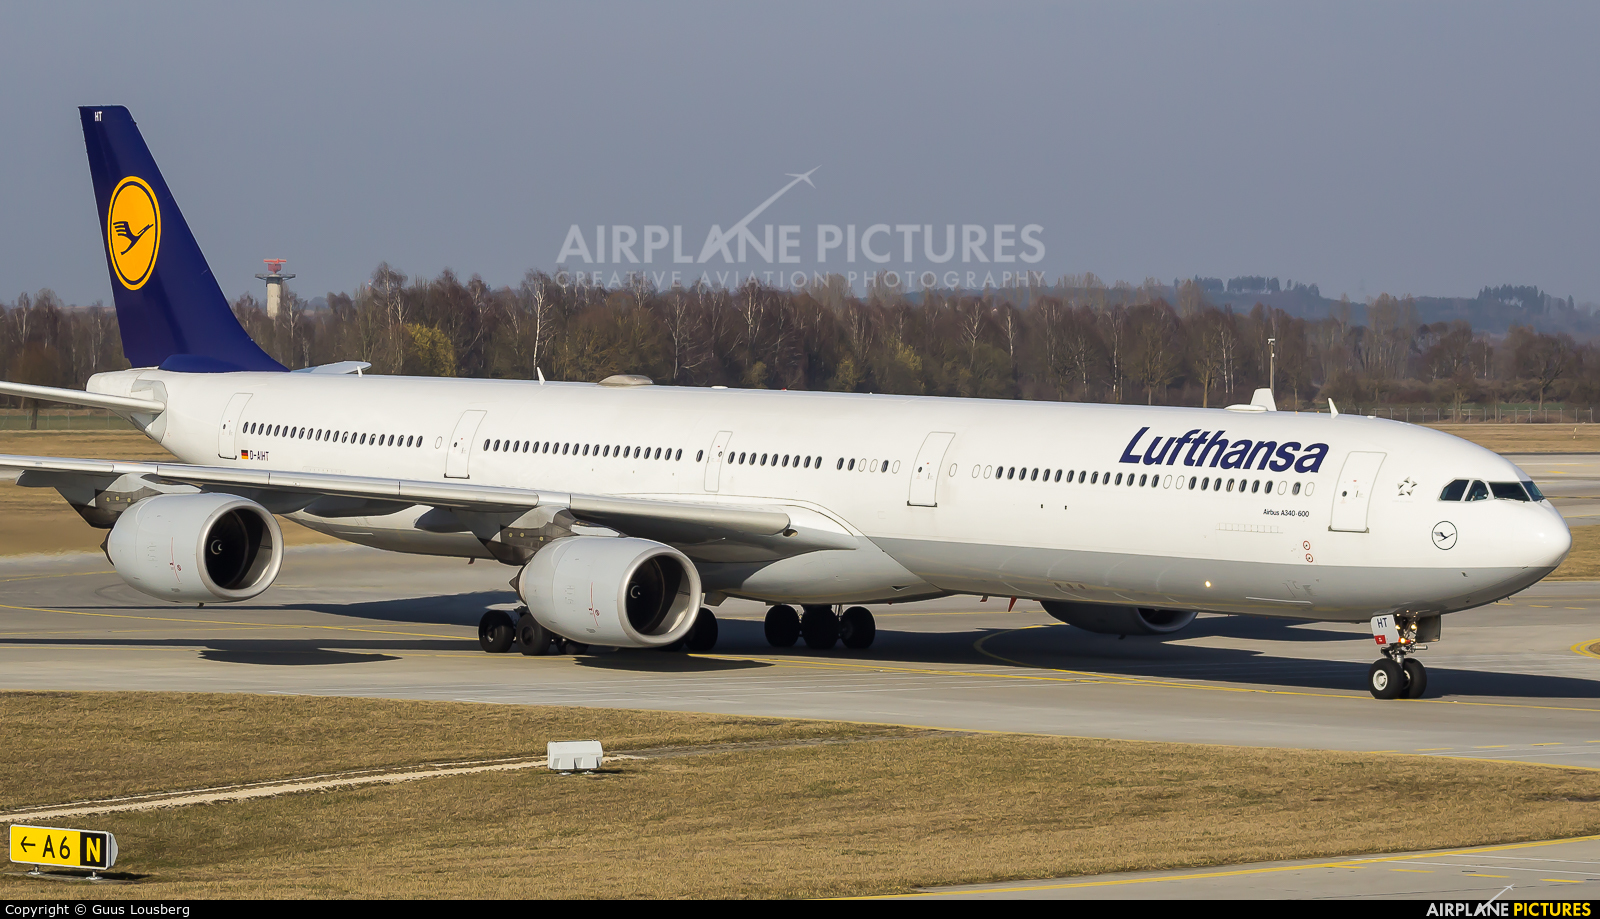 Lufthansa D-AIHT aircraft at Munich